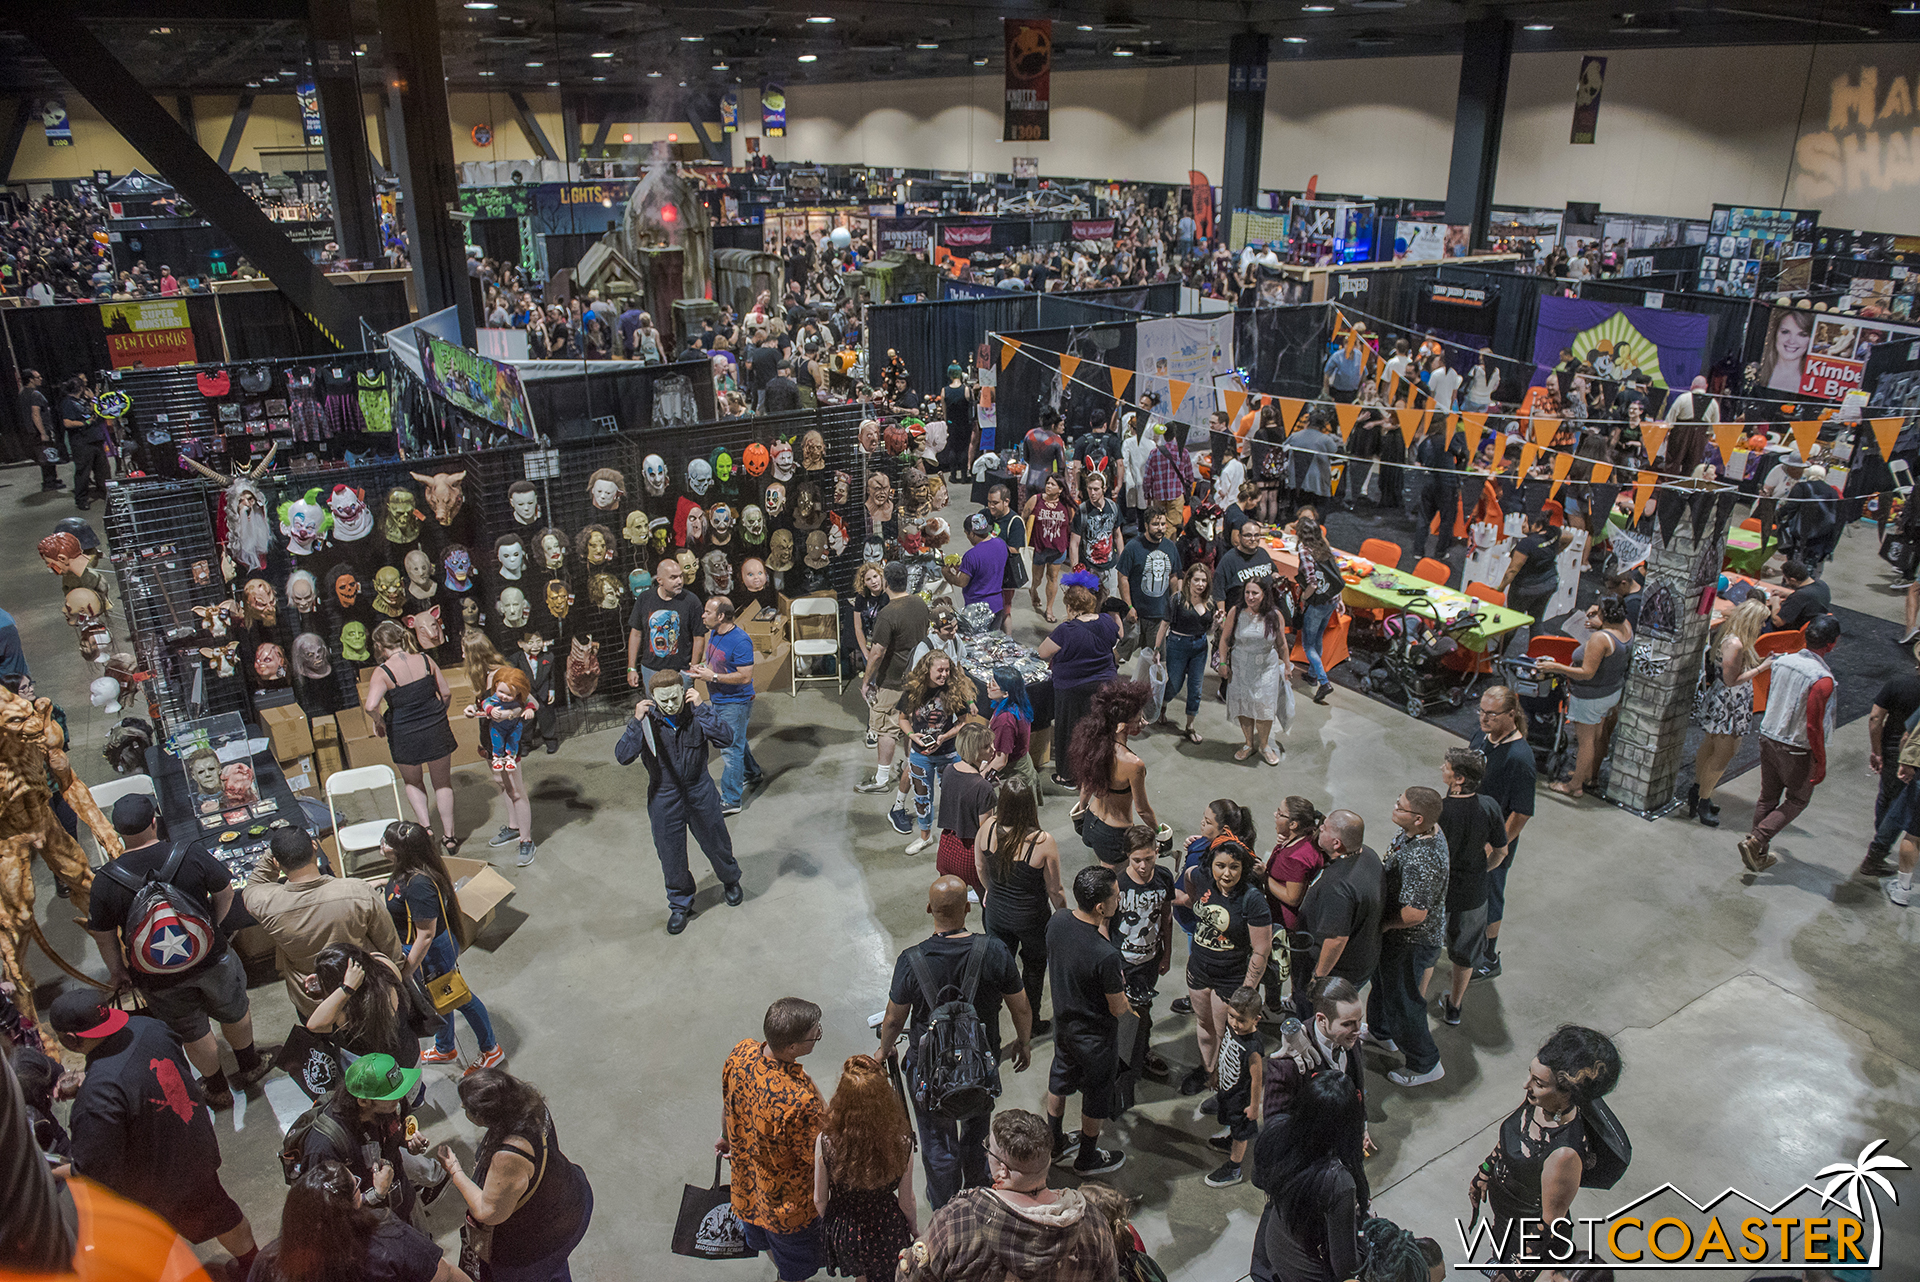 The exhibition hall was packed all weekend--a sign of the great success of Midsummer Scream!